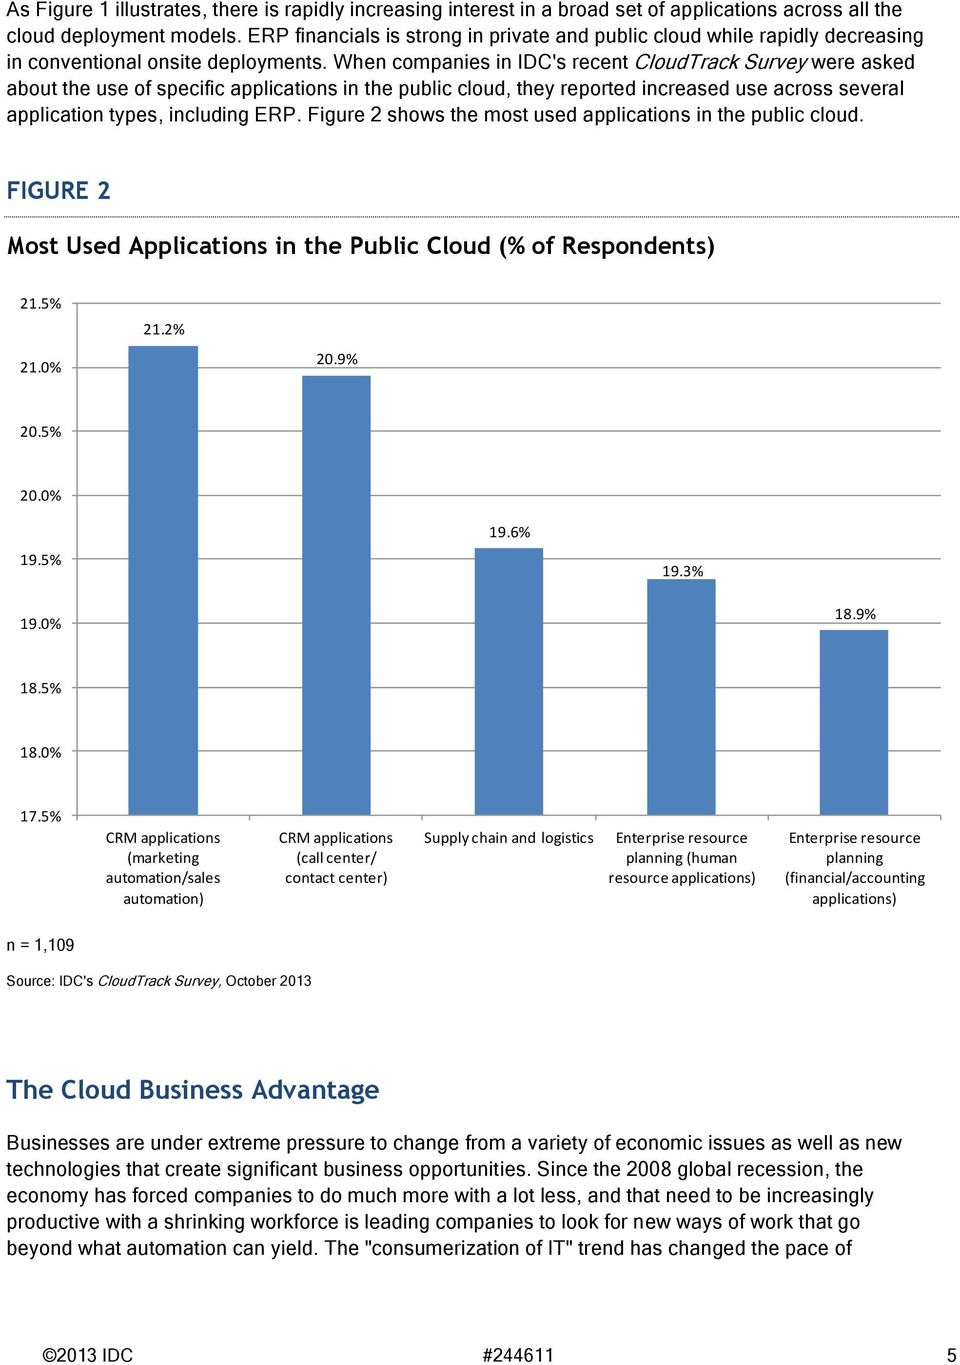 When companies in IDC's recent CloudTrack Survey were asked about the use of specific applications in the public cloud, they reported increased use across several application types, including ERP.